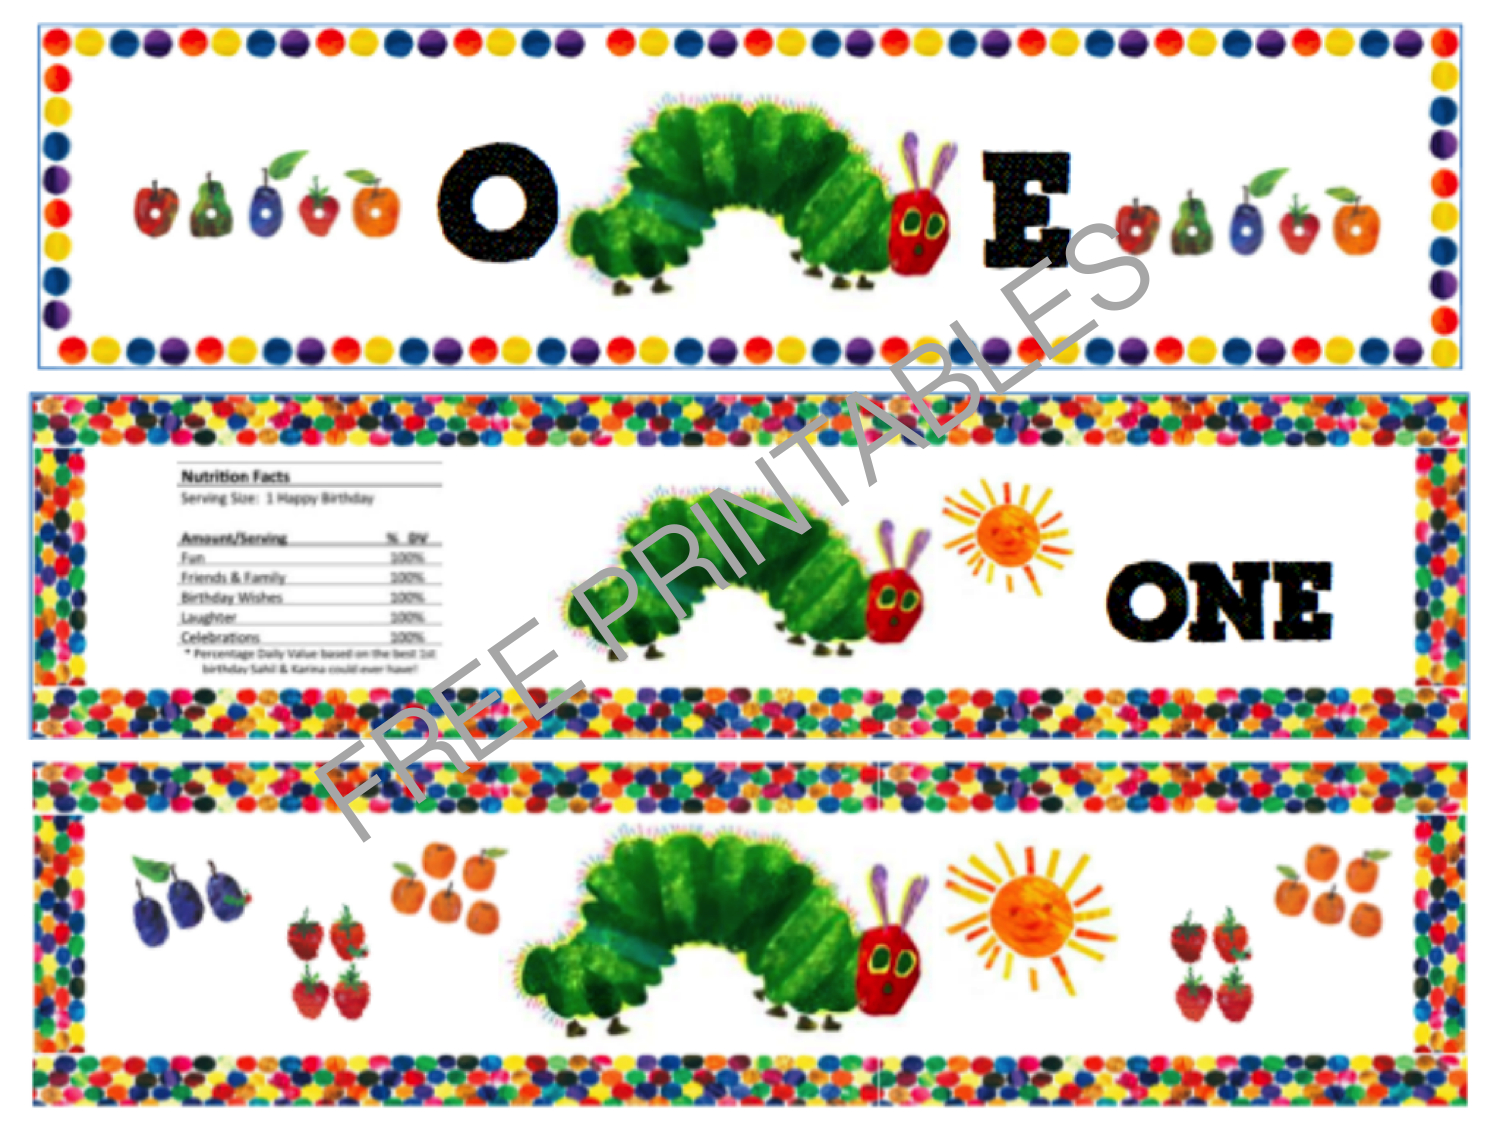 Free Printable: The Very Hungry Caterpillar Birthday Bottle Labels - The Very Hungry Caterpillar Free Printables